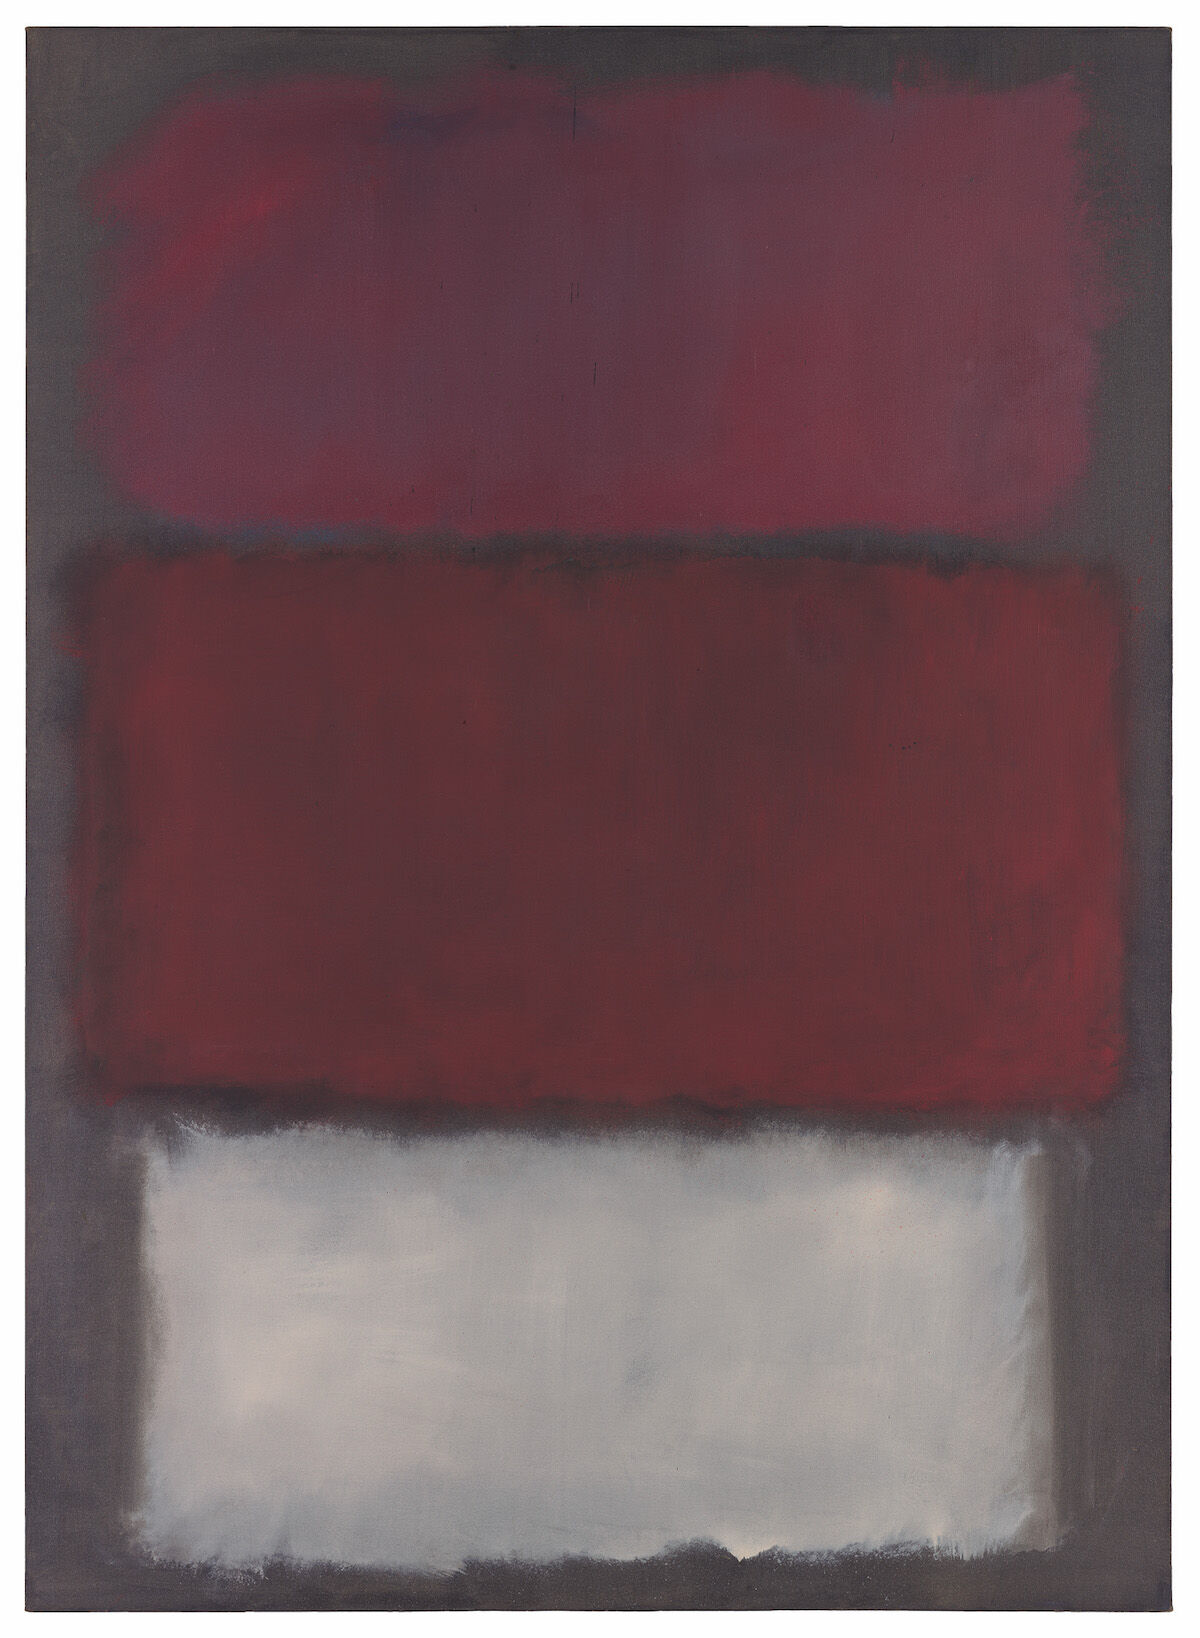 Mark Rothko, Untitled, 1960, oil on canvas. Est. $35 million–50 million. © 1998 Kate Rothko Prizel and Christopher Rothko / Artists Rights Society (ARS), New York.